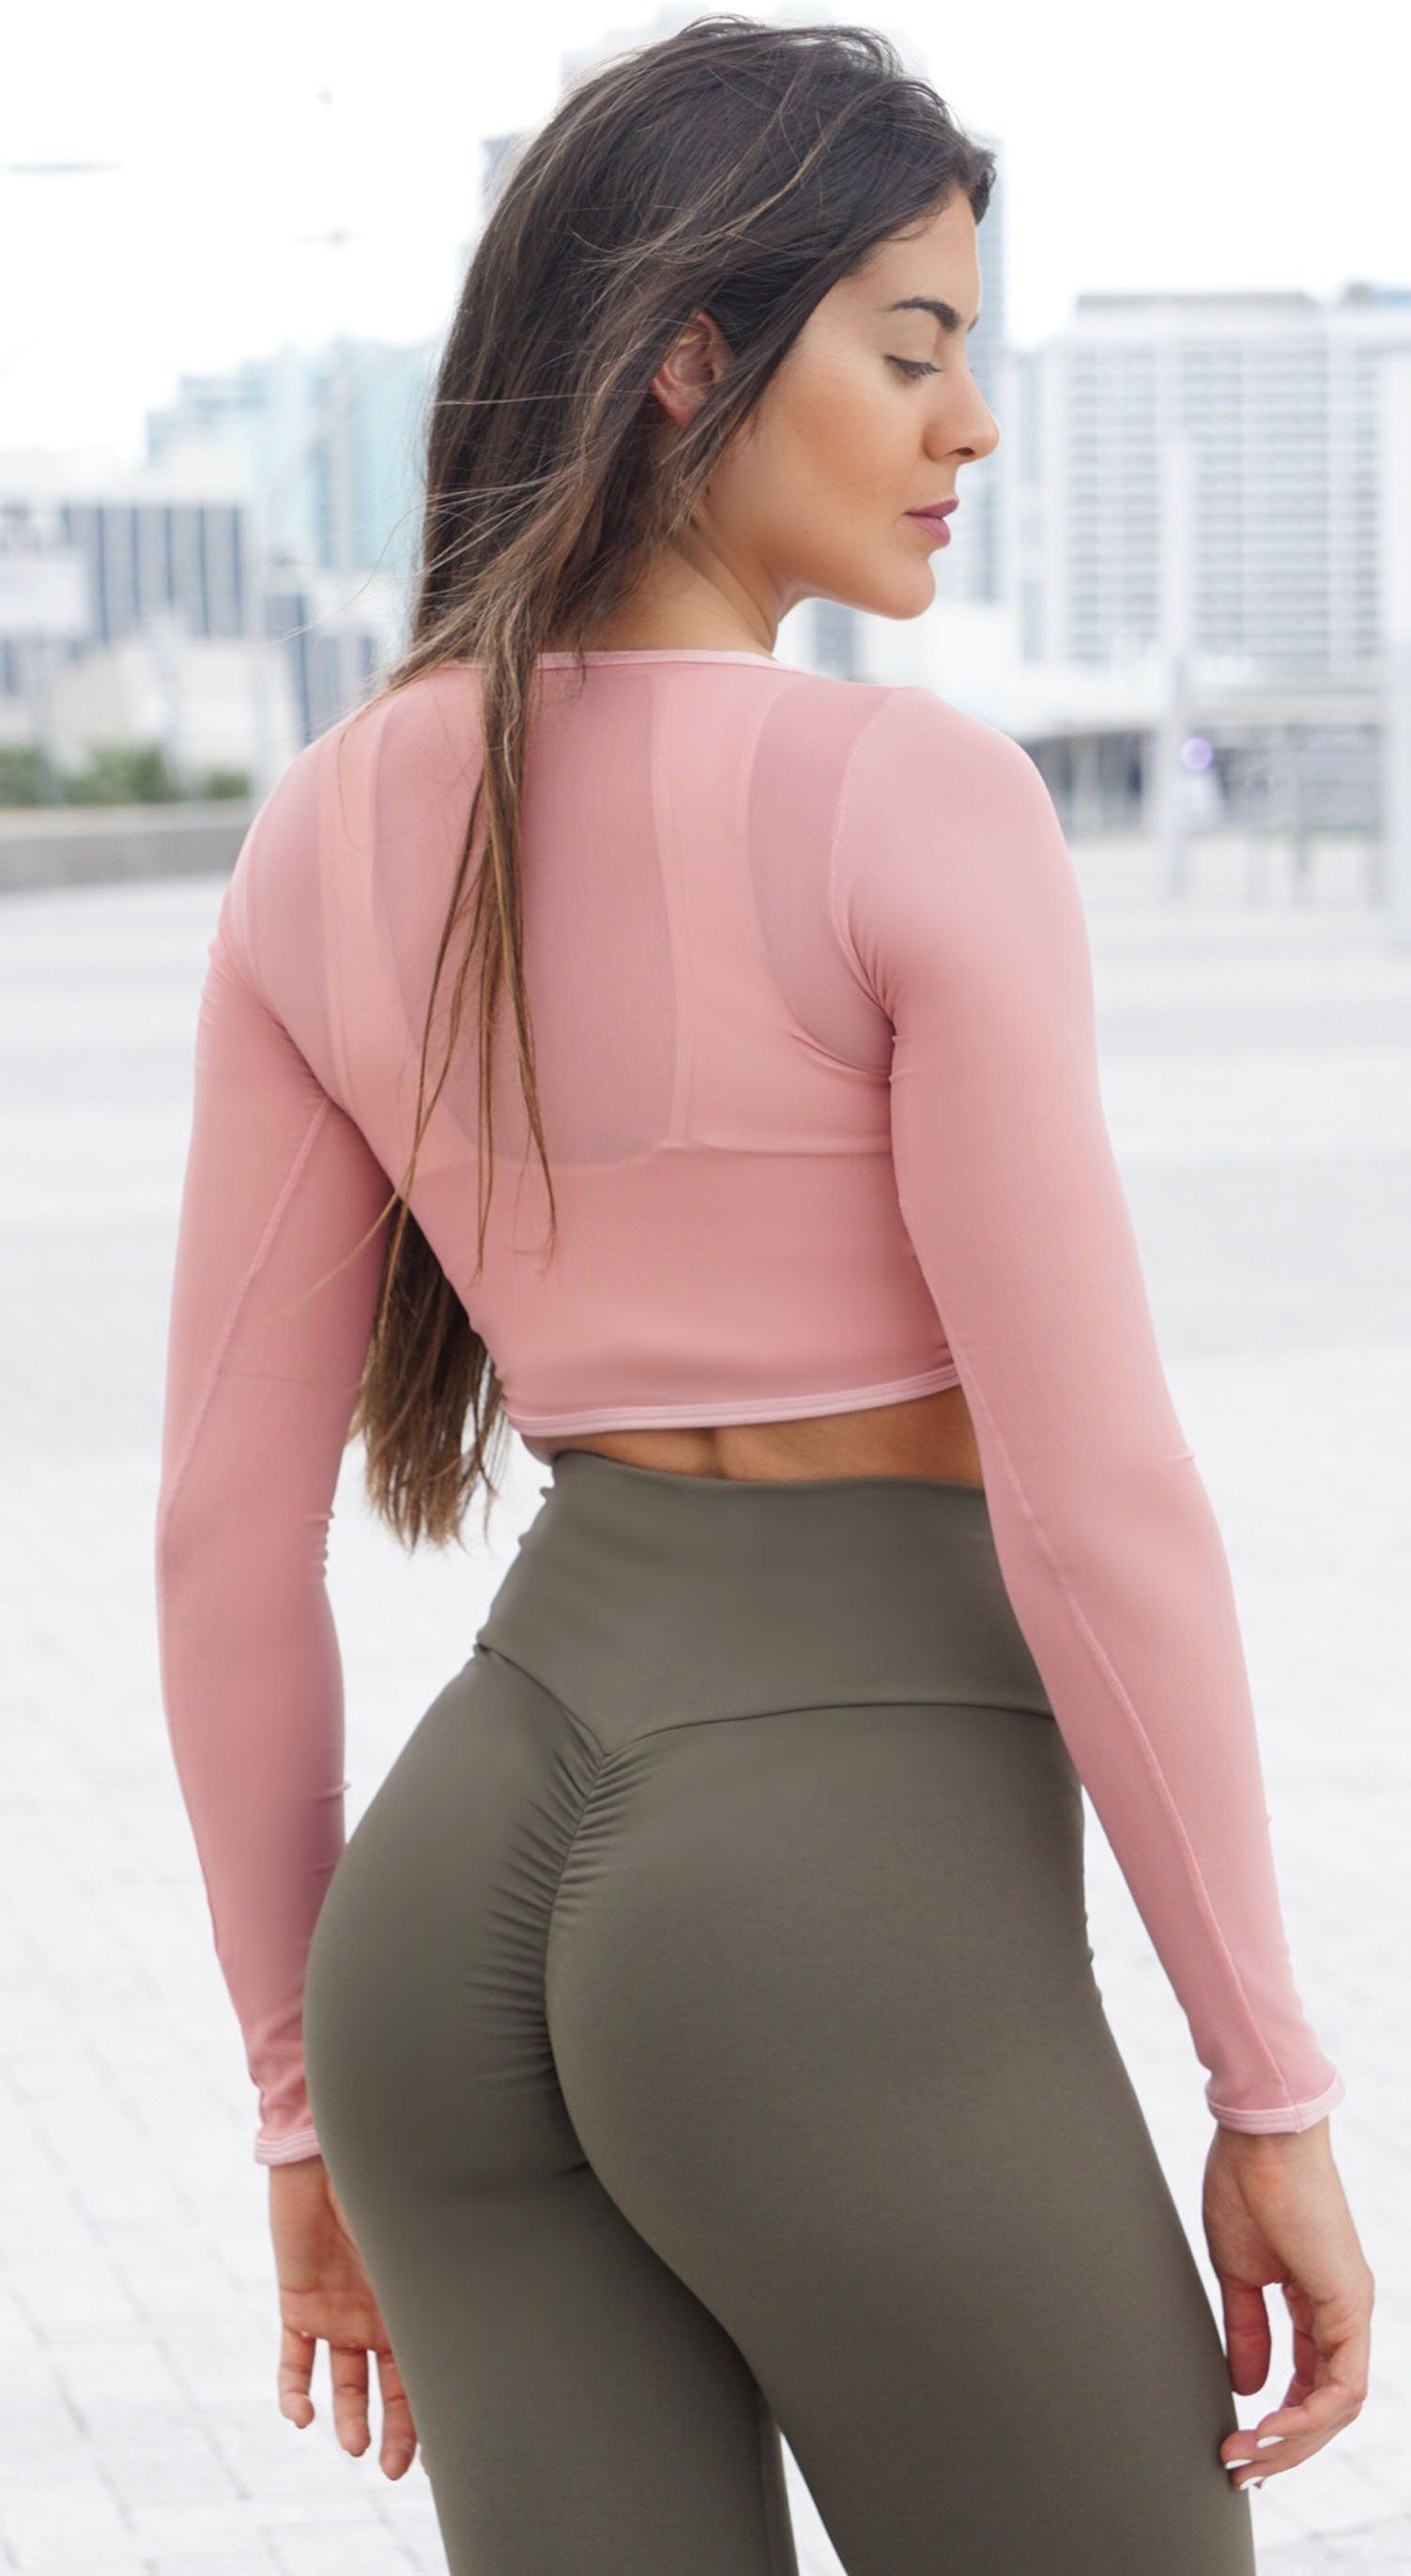 Brazilian Workout Top - Top Cropped Mesh Nude Pink